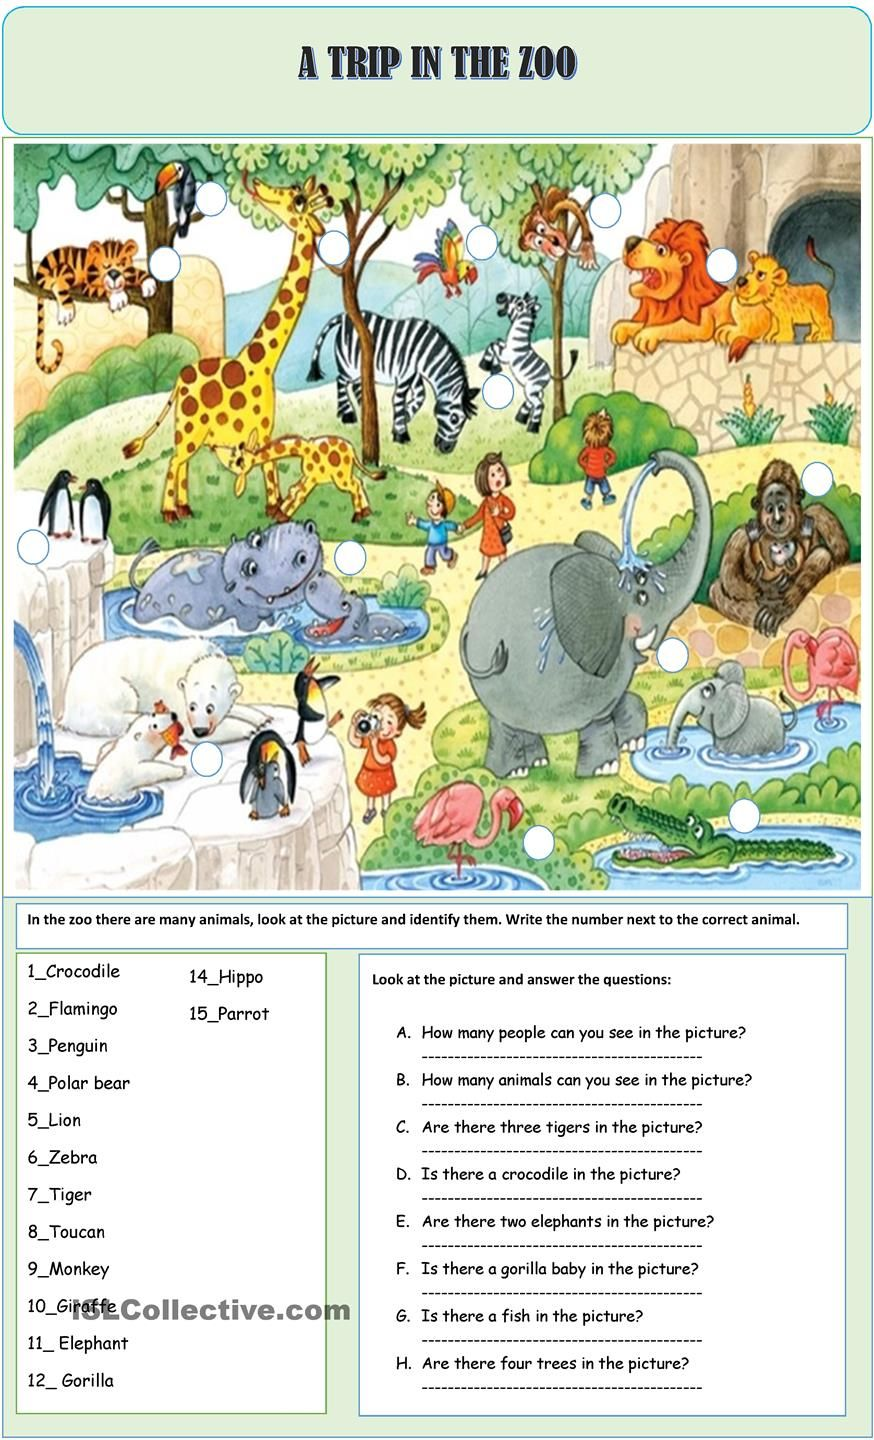 A TRIP IN THE ZOO | ESL worksheets of the day | English lessons